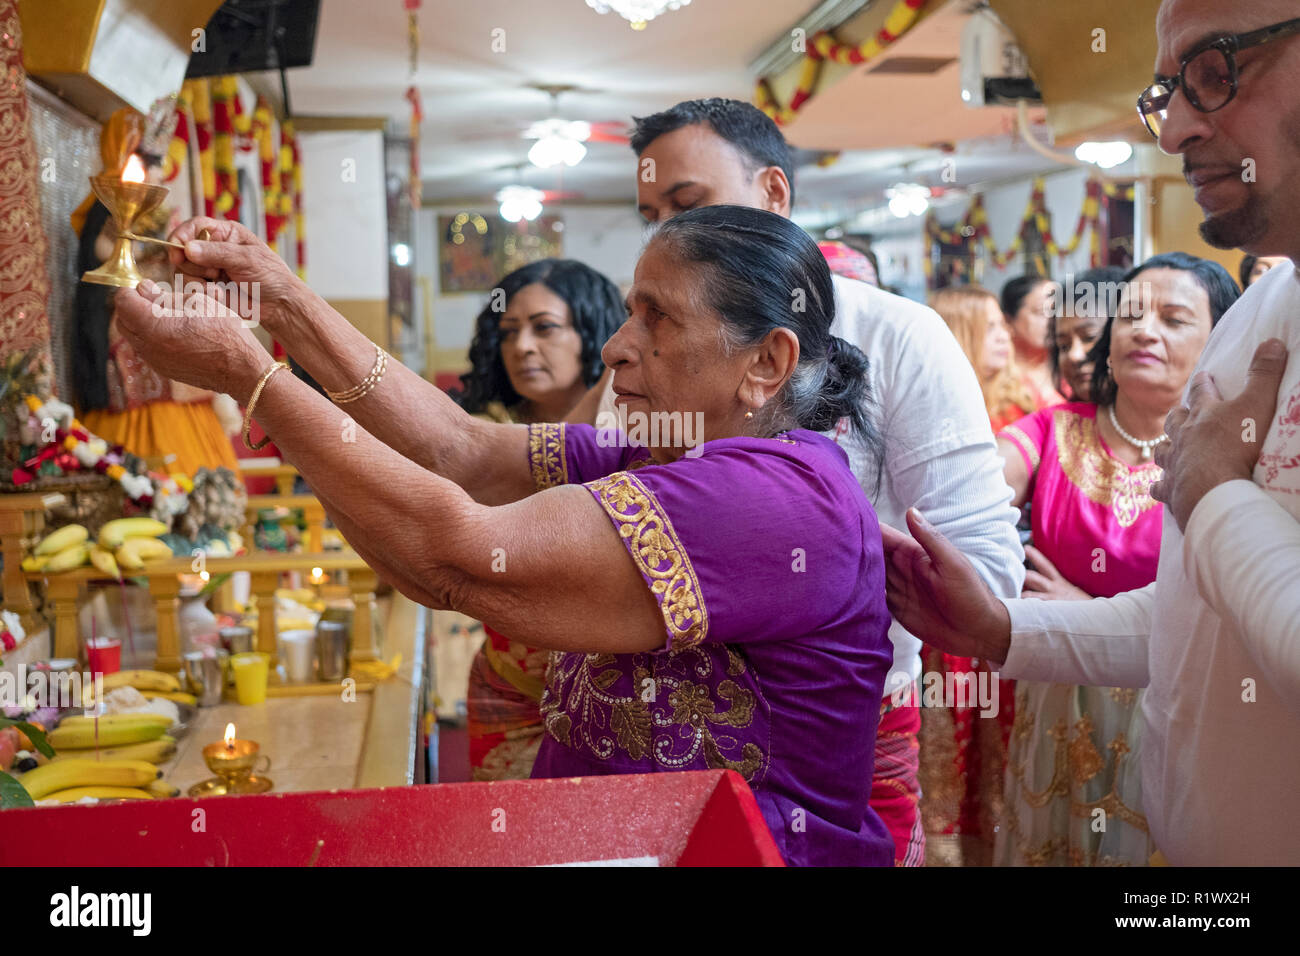 Surrounded by her family, an older Hindu woman makes offerings to the deities at a temple in Ozone Park, Queens, New York. - Stock Image